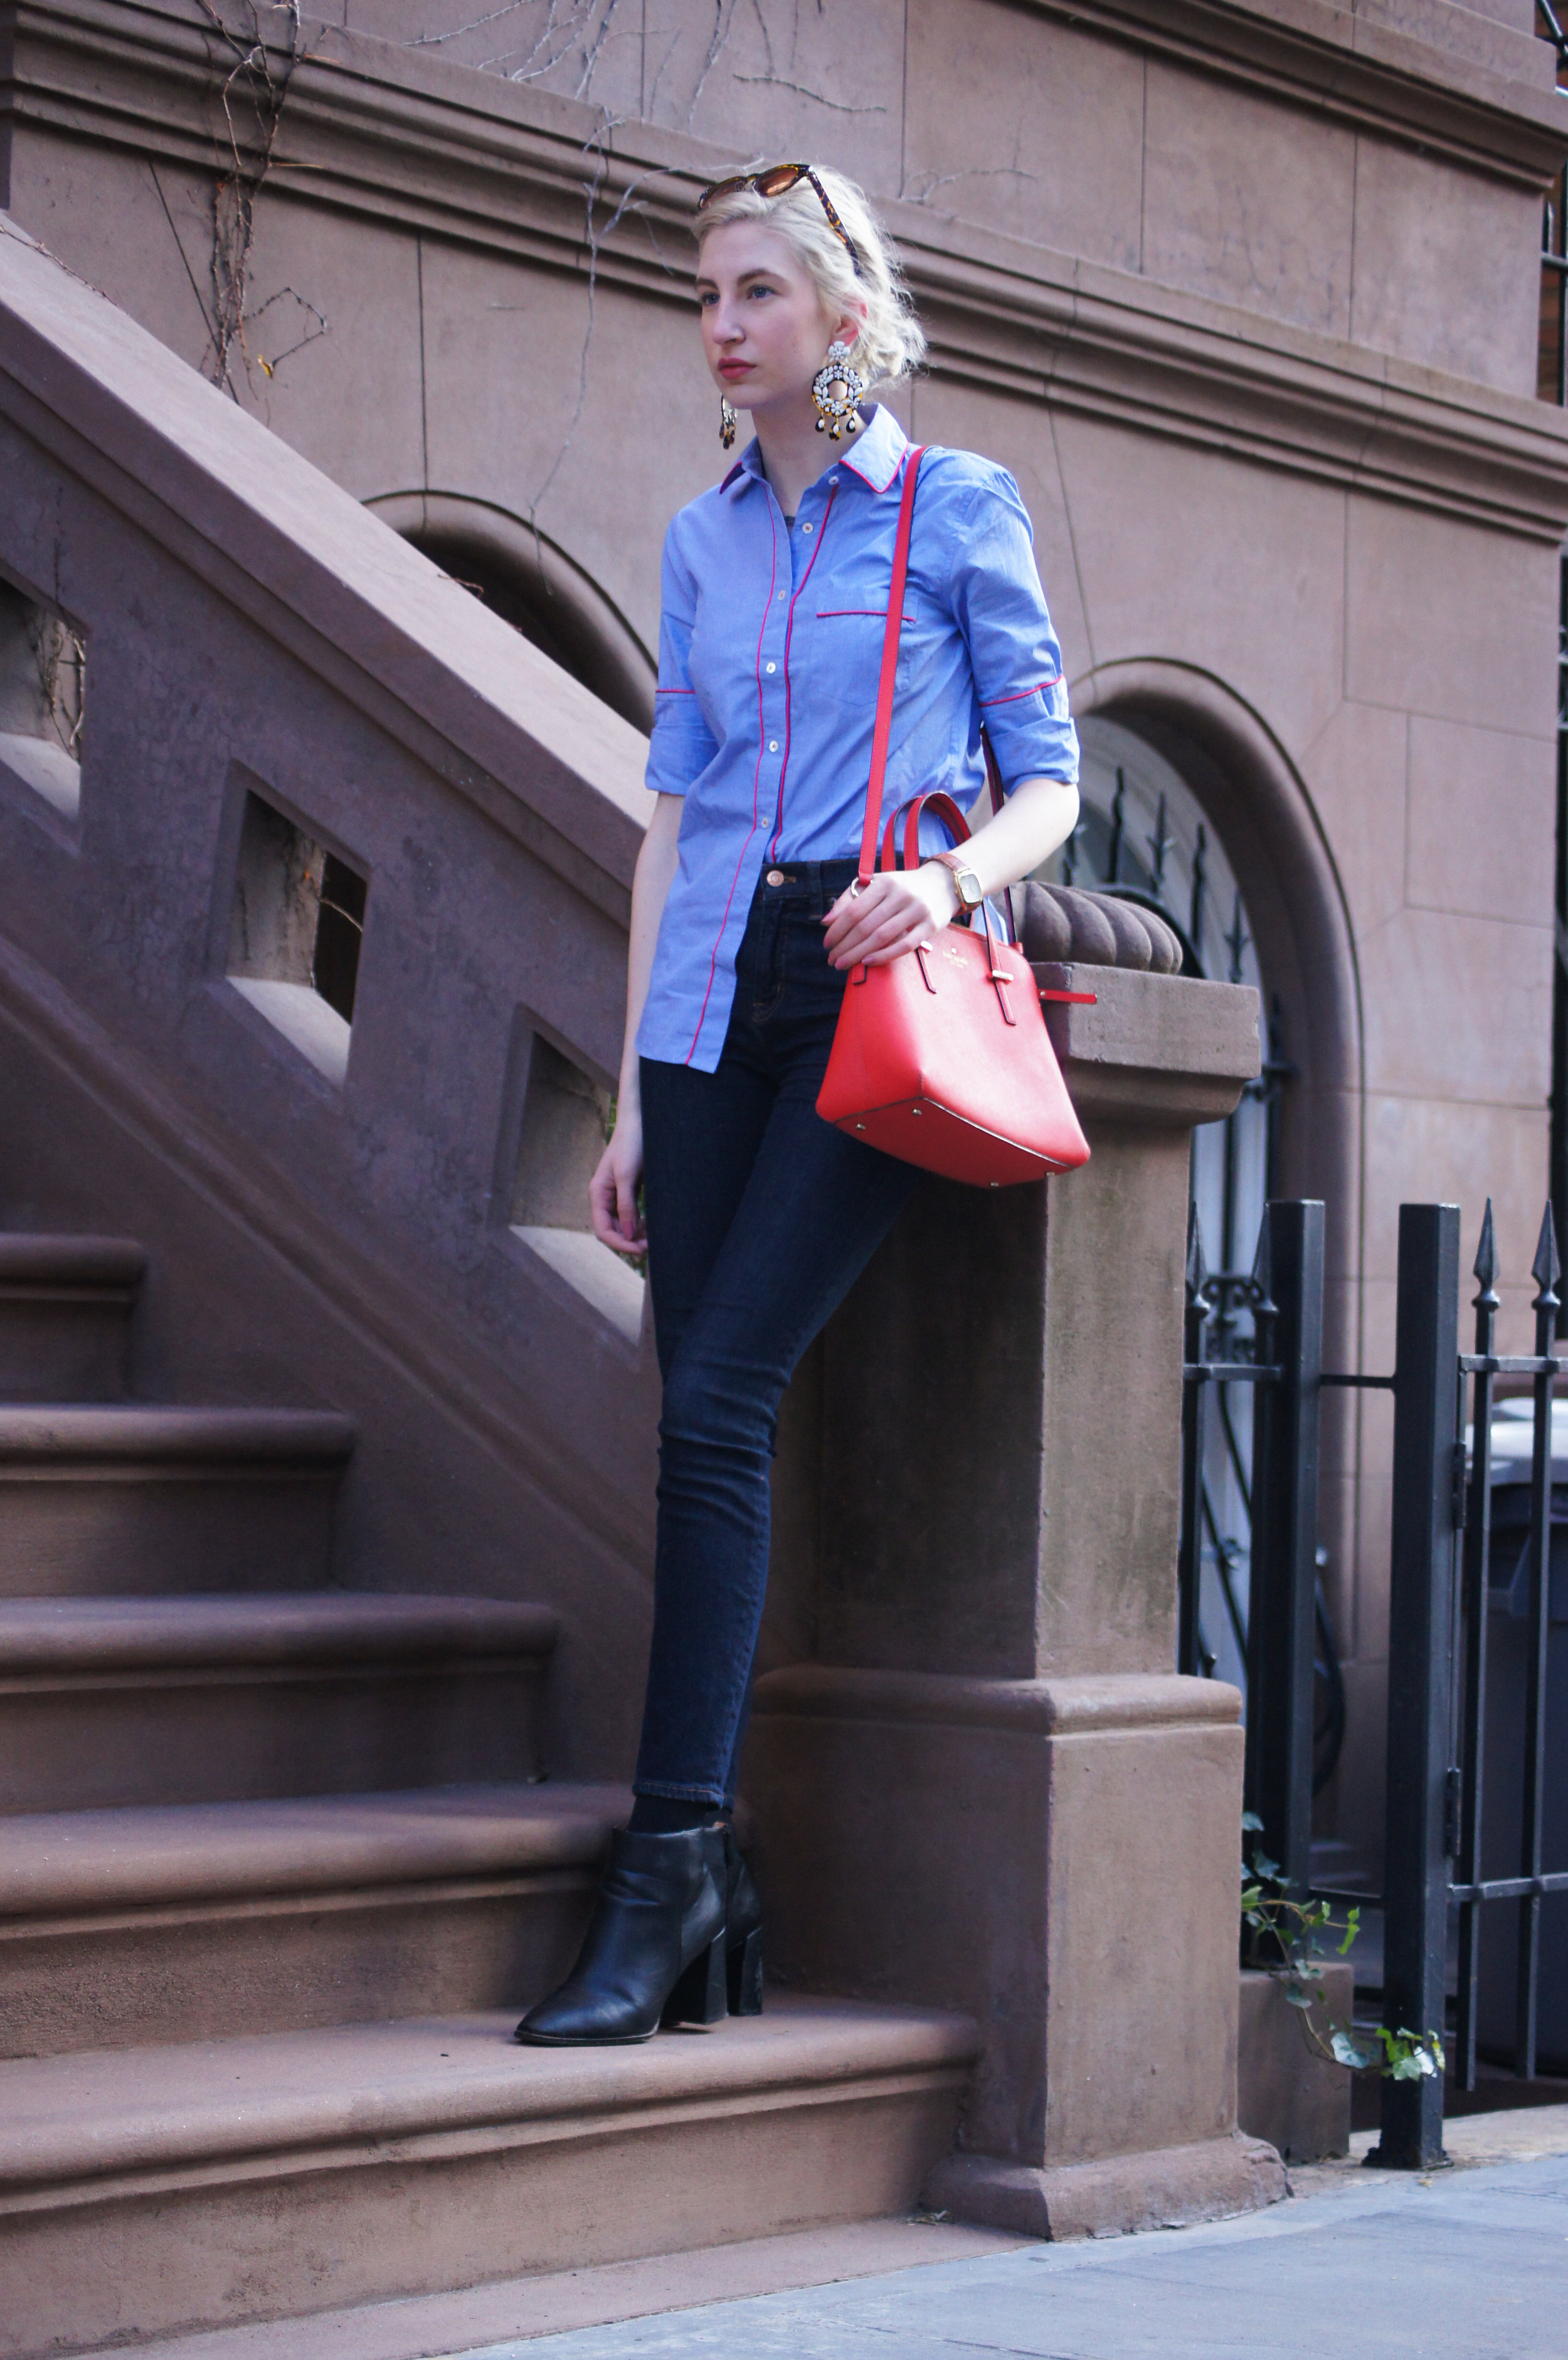 J.Crew tipped pajama shirt, lookout high rise jeans, black block heeled booties, kate spade cedar street maise, J.Crew statement earrings, upper west side NYC